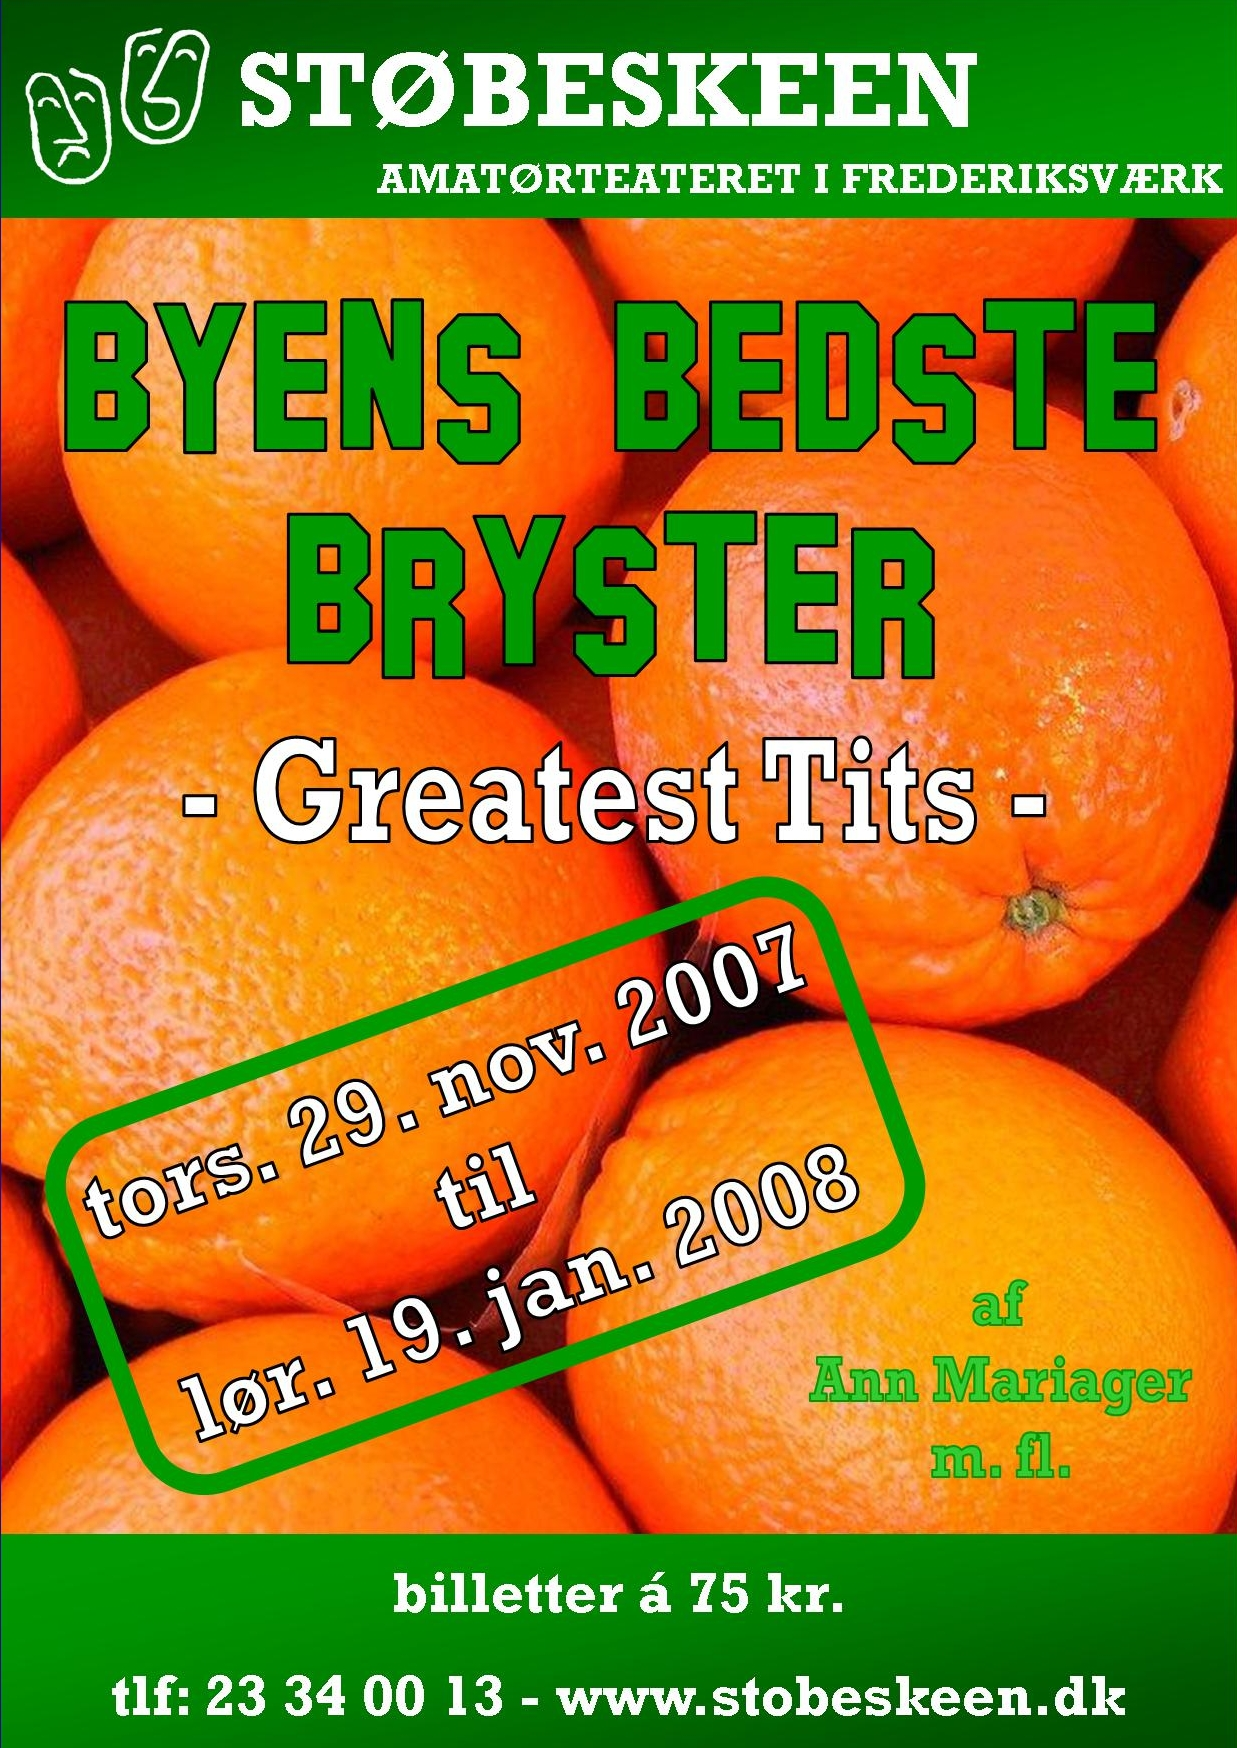 sexparty byens bedste bryster